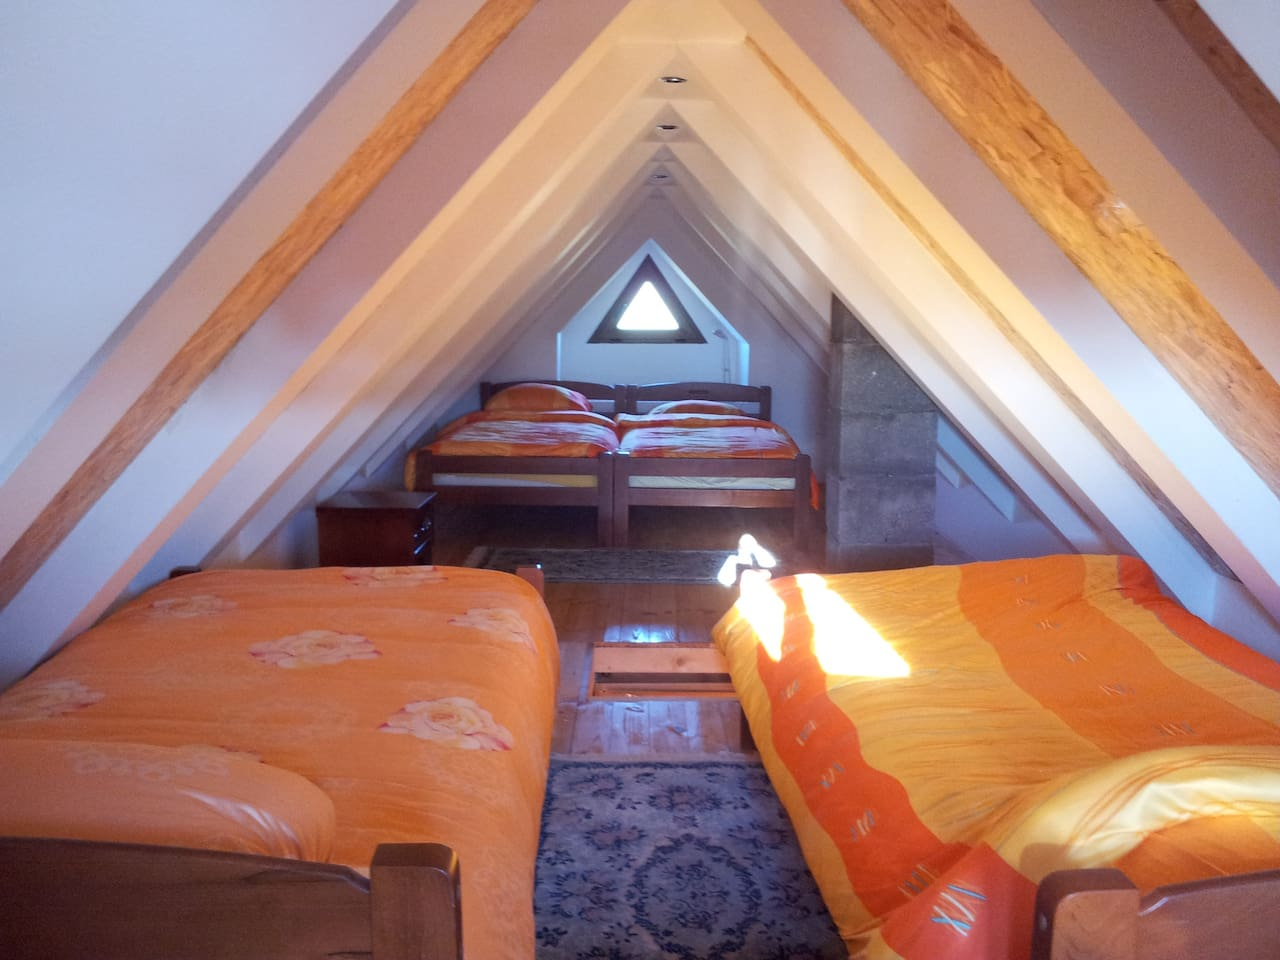 There are four comfortable beds in the attic.